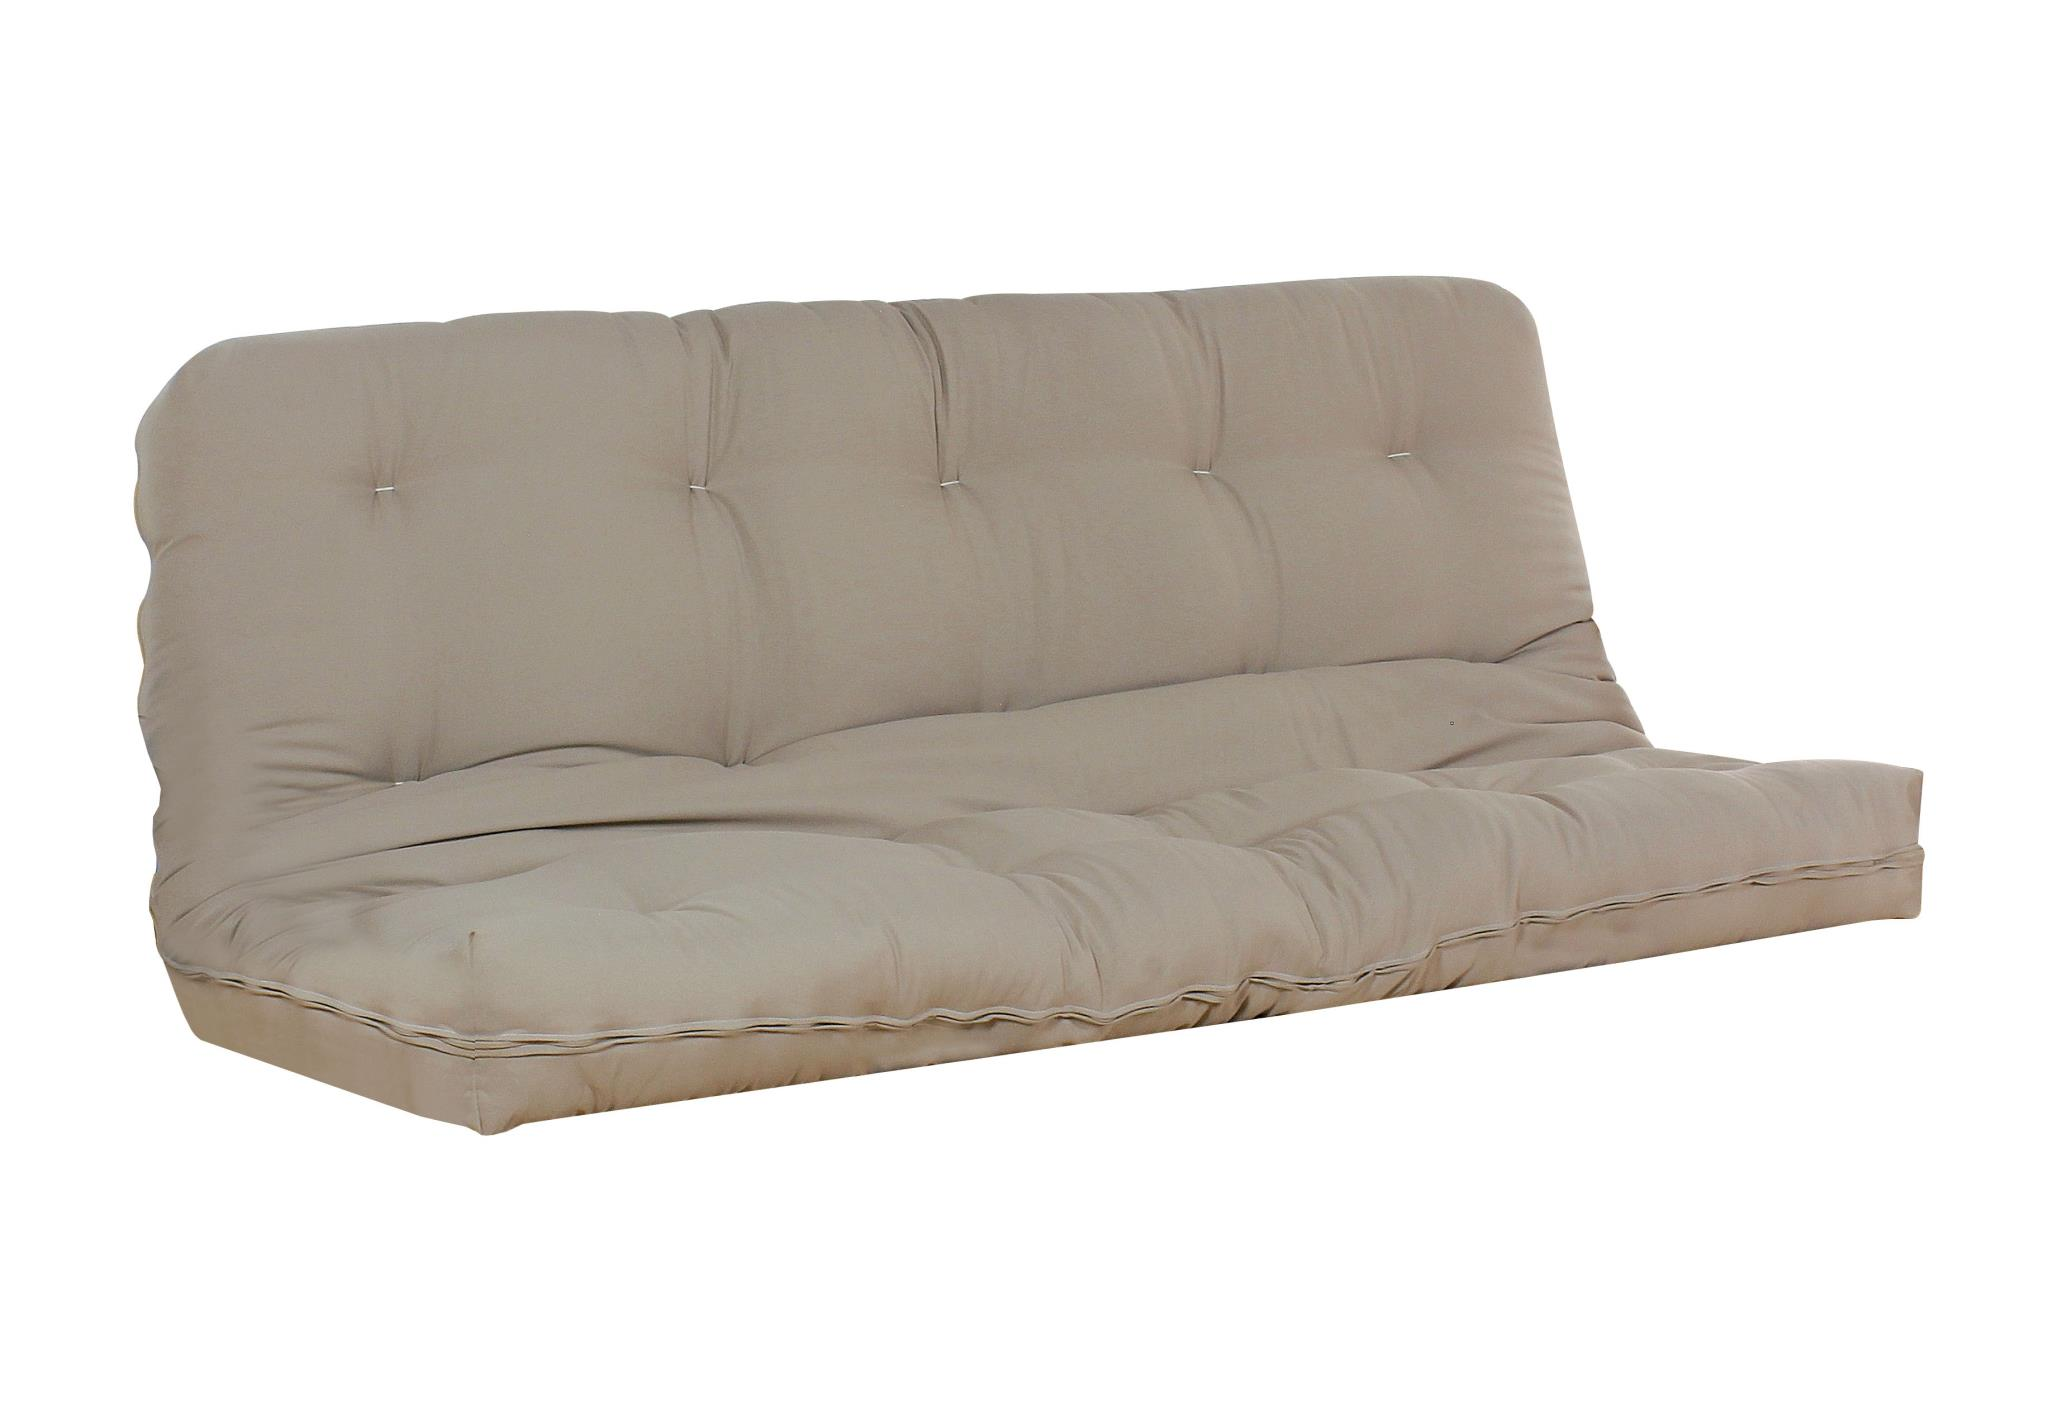 Khaki Futon Mattress